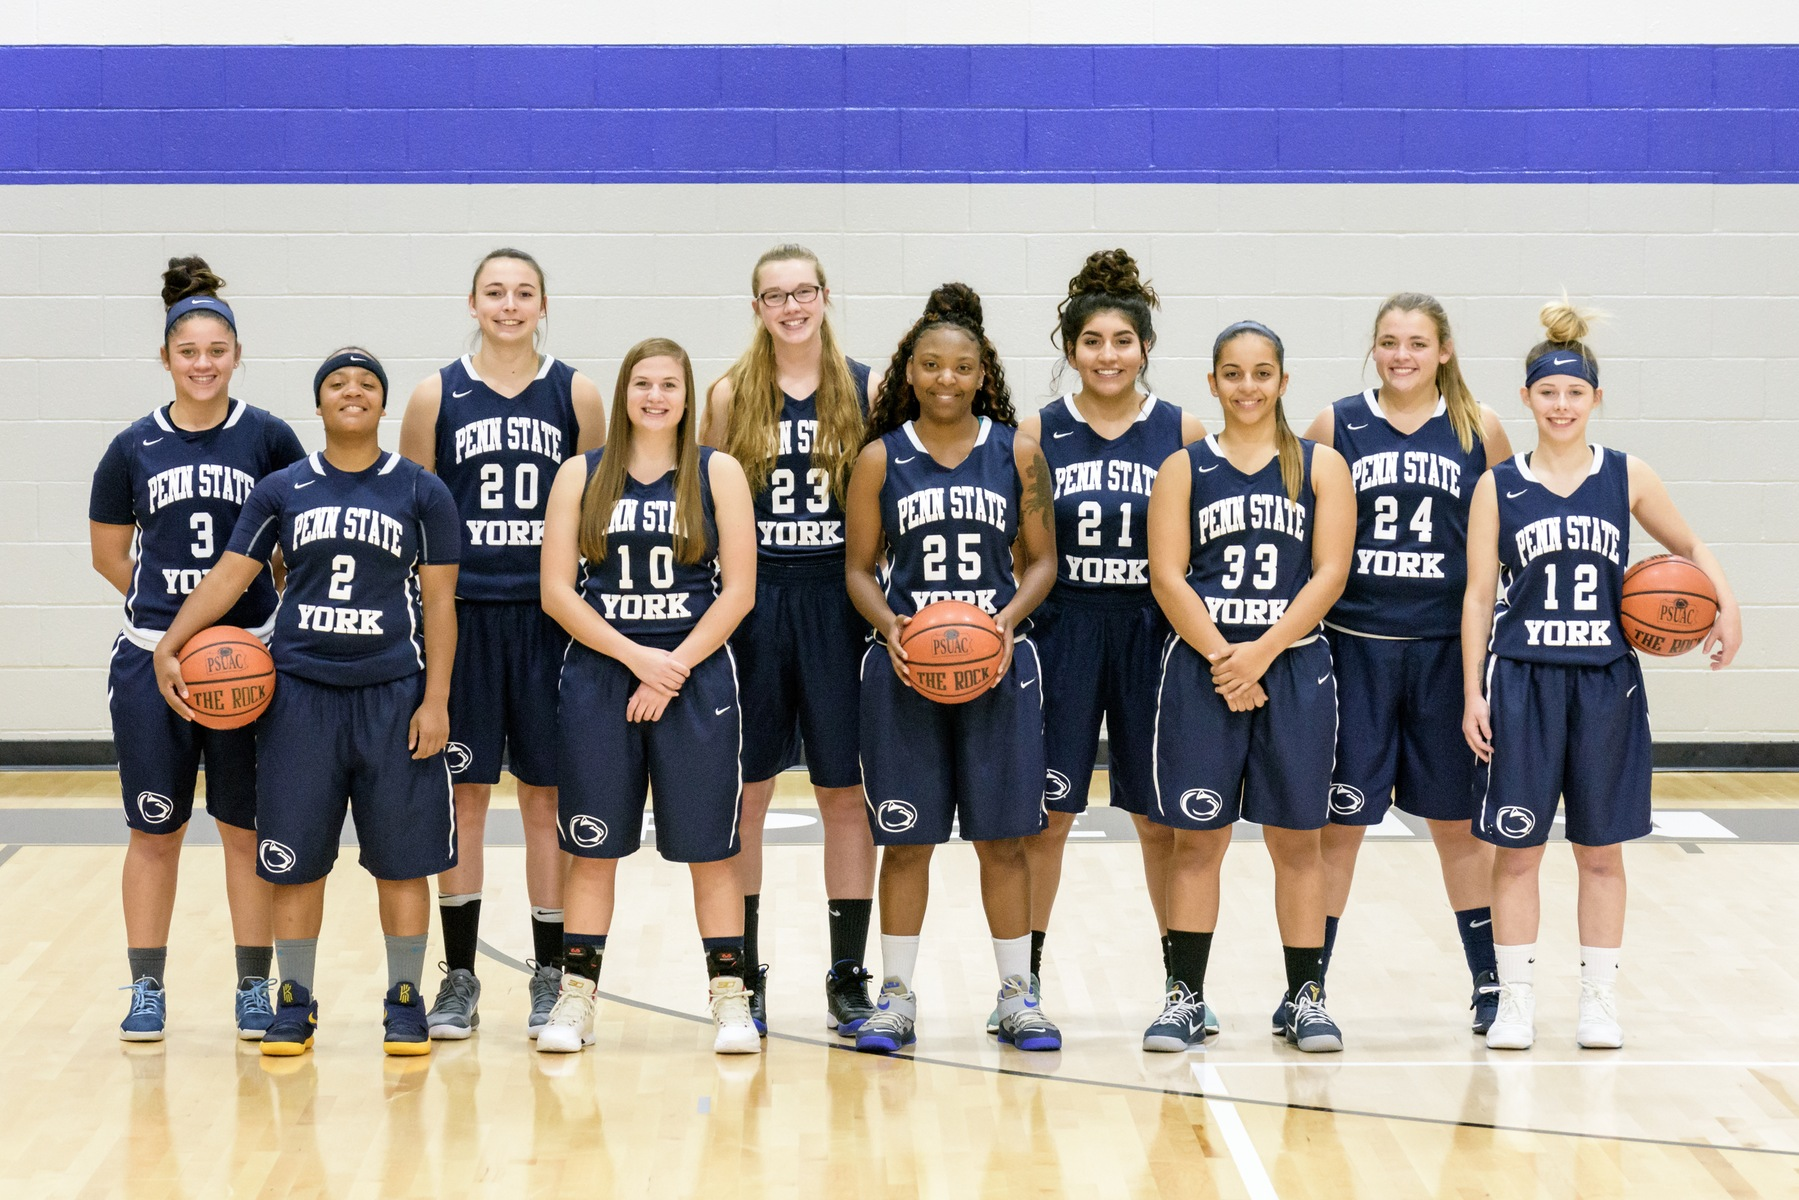 2017–18 Penn State York Women's Basketball